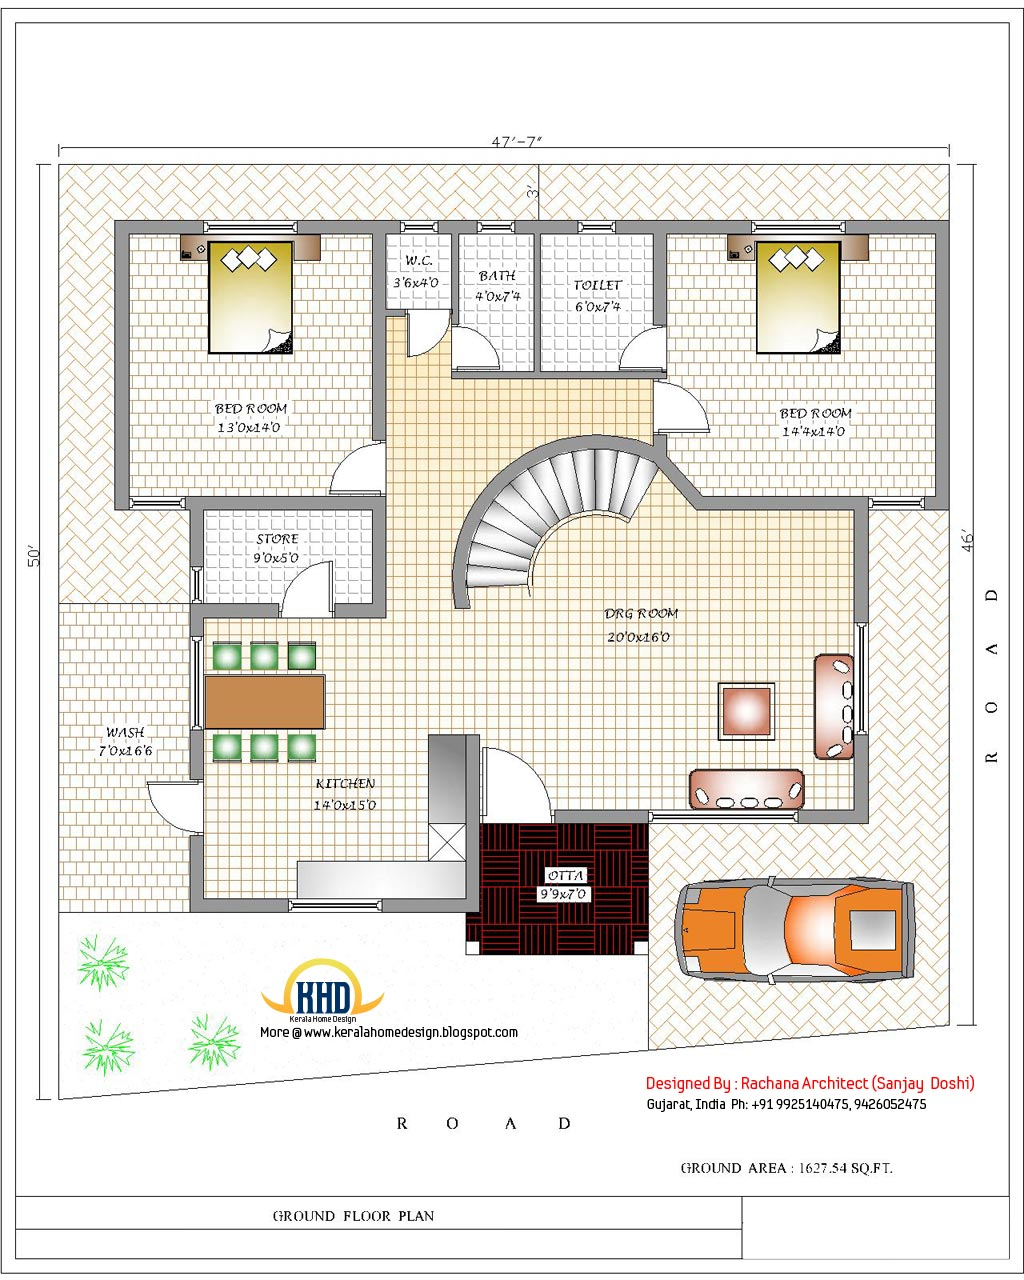 India home design with house plans 3200 sq ft kerala for Architecture design of house in india